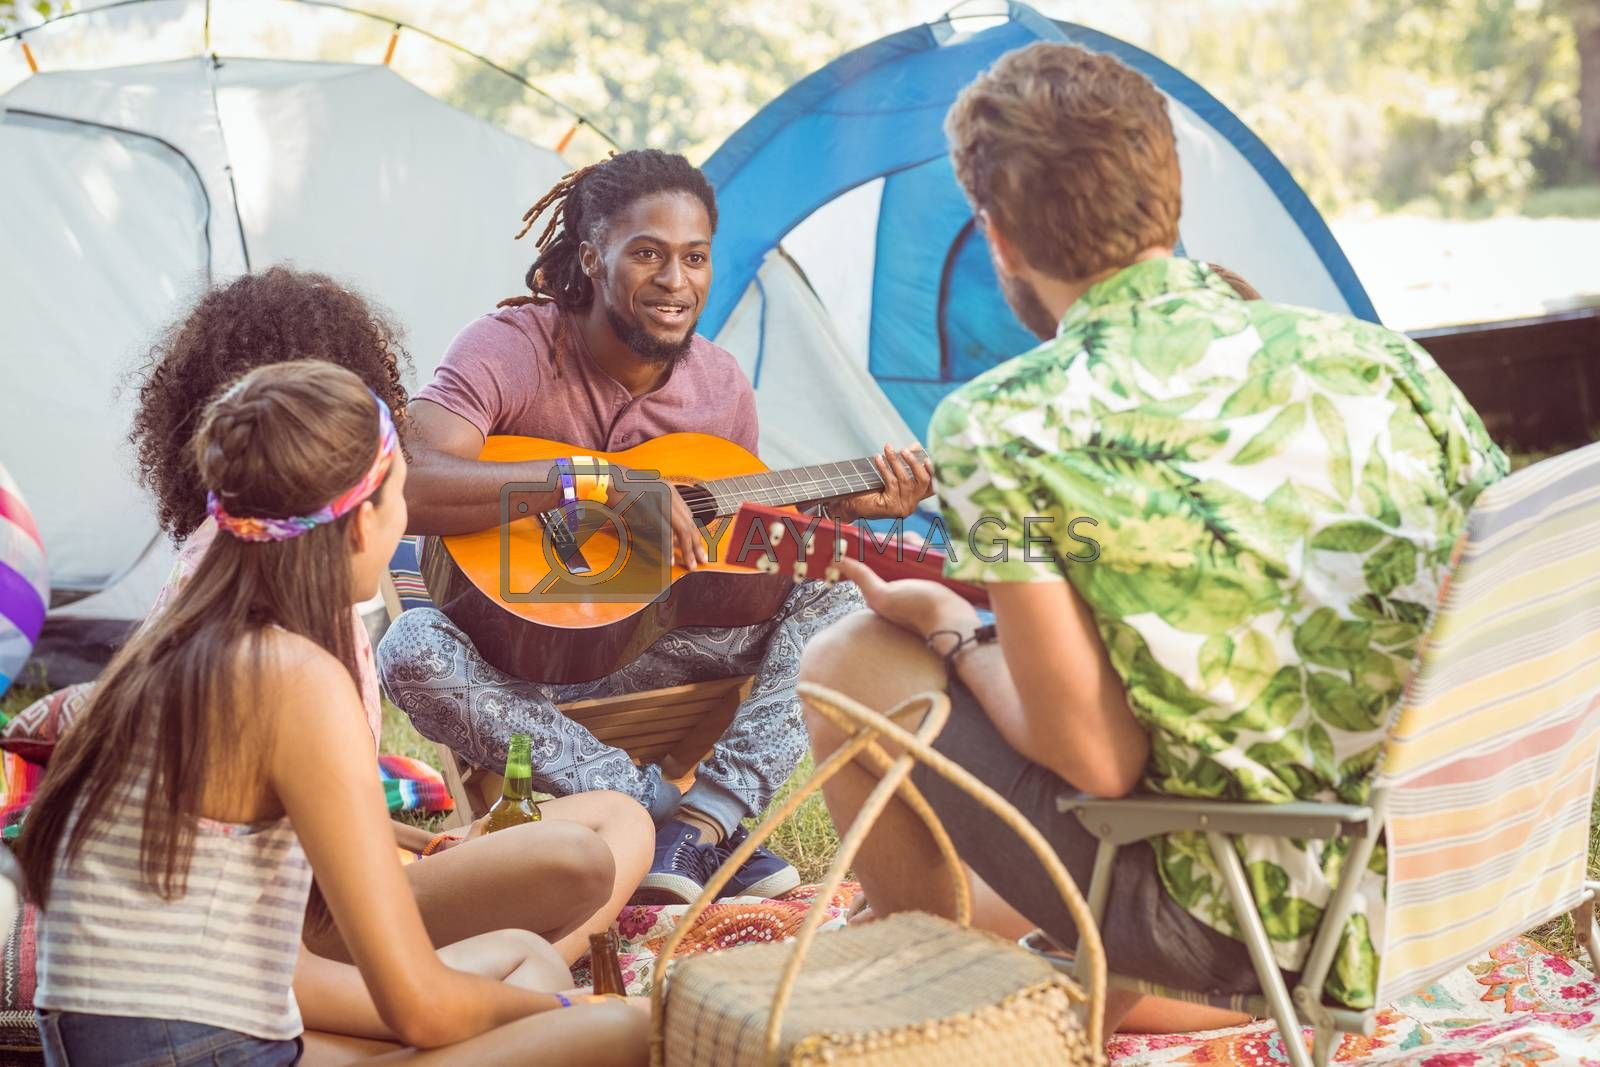 Hipster playing guitar for his friends  at a music festival